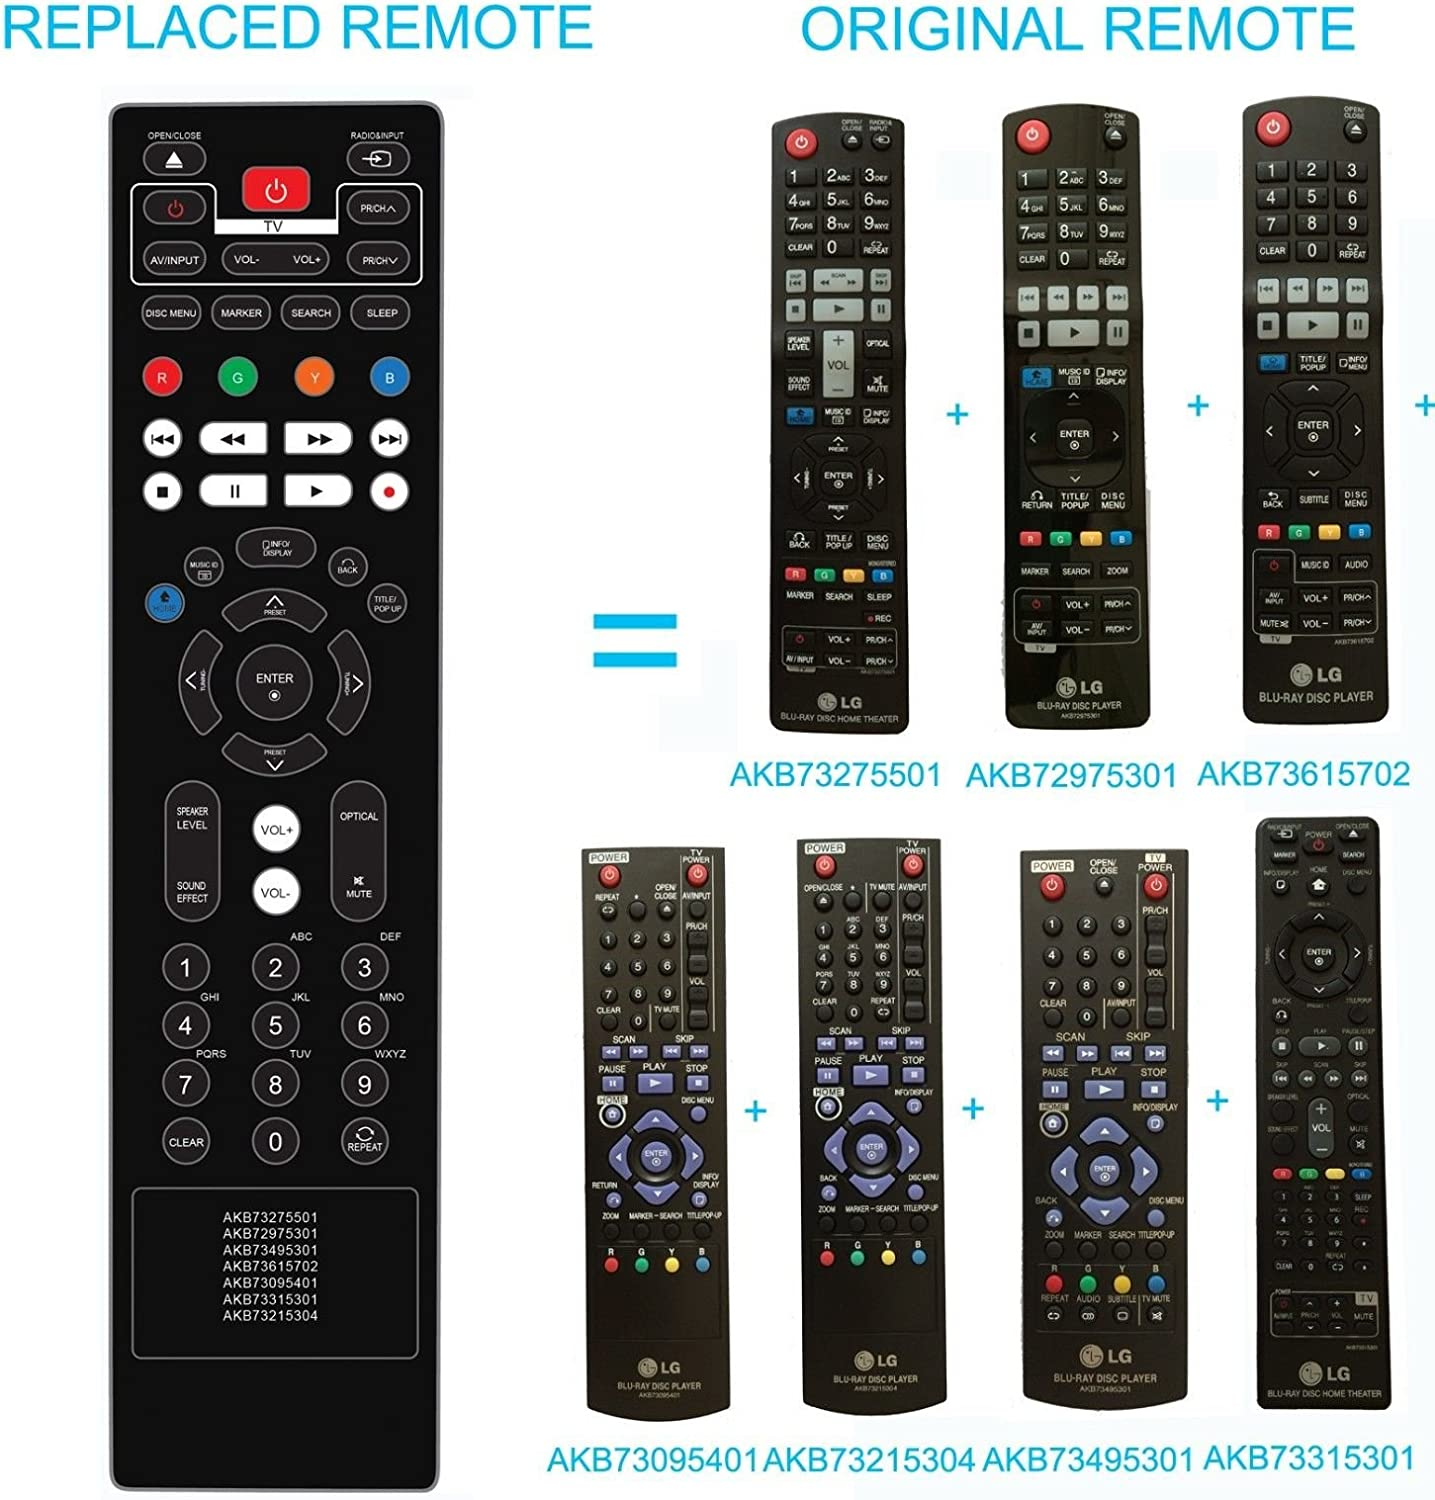 New USARMT Replaced LG BLURAY Player Home Theater Remote Control AKB73275501 AKB72975301 AKB73615702 AKB73095401 AKB73495301 AKB73315301 fit for LHB336 HB906PAWPD HB906SBPD HB906SCPR LHB336, LHB536,